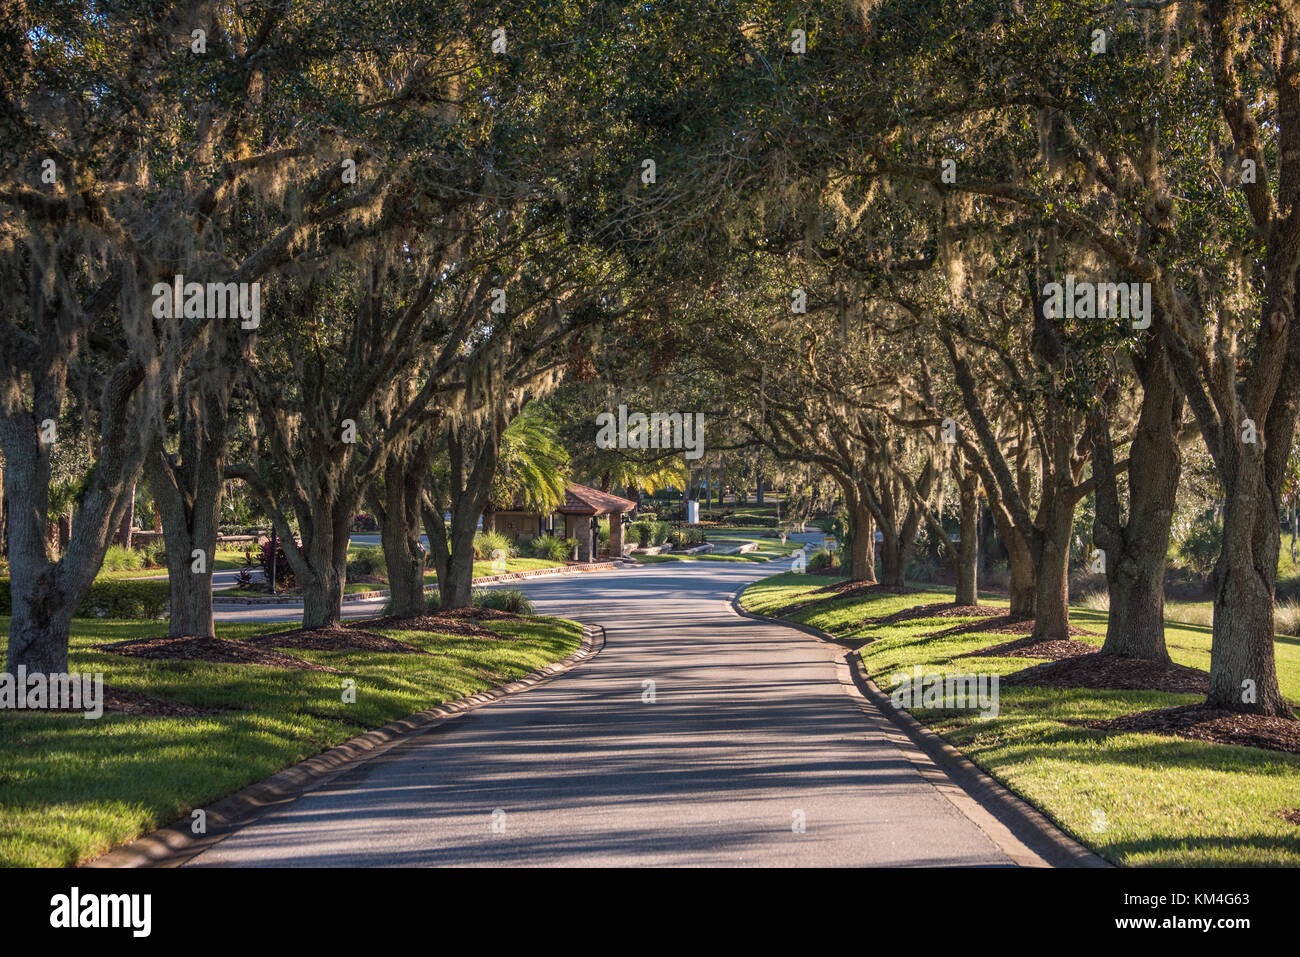 Tree covered lane near the entrance to Sawgrass Pointe at Sawgrass Players Club in Ponte Vedra Beach, Florida. (USA) - Stock Image